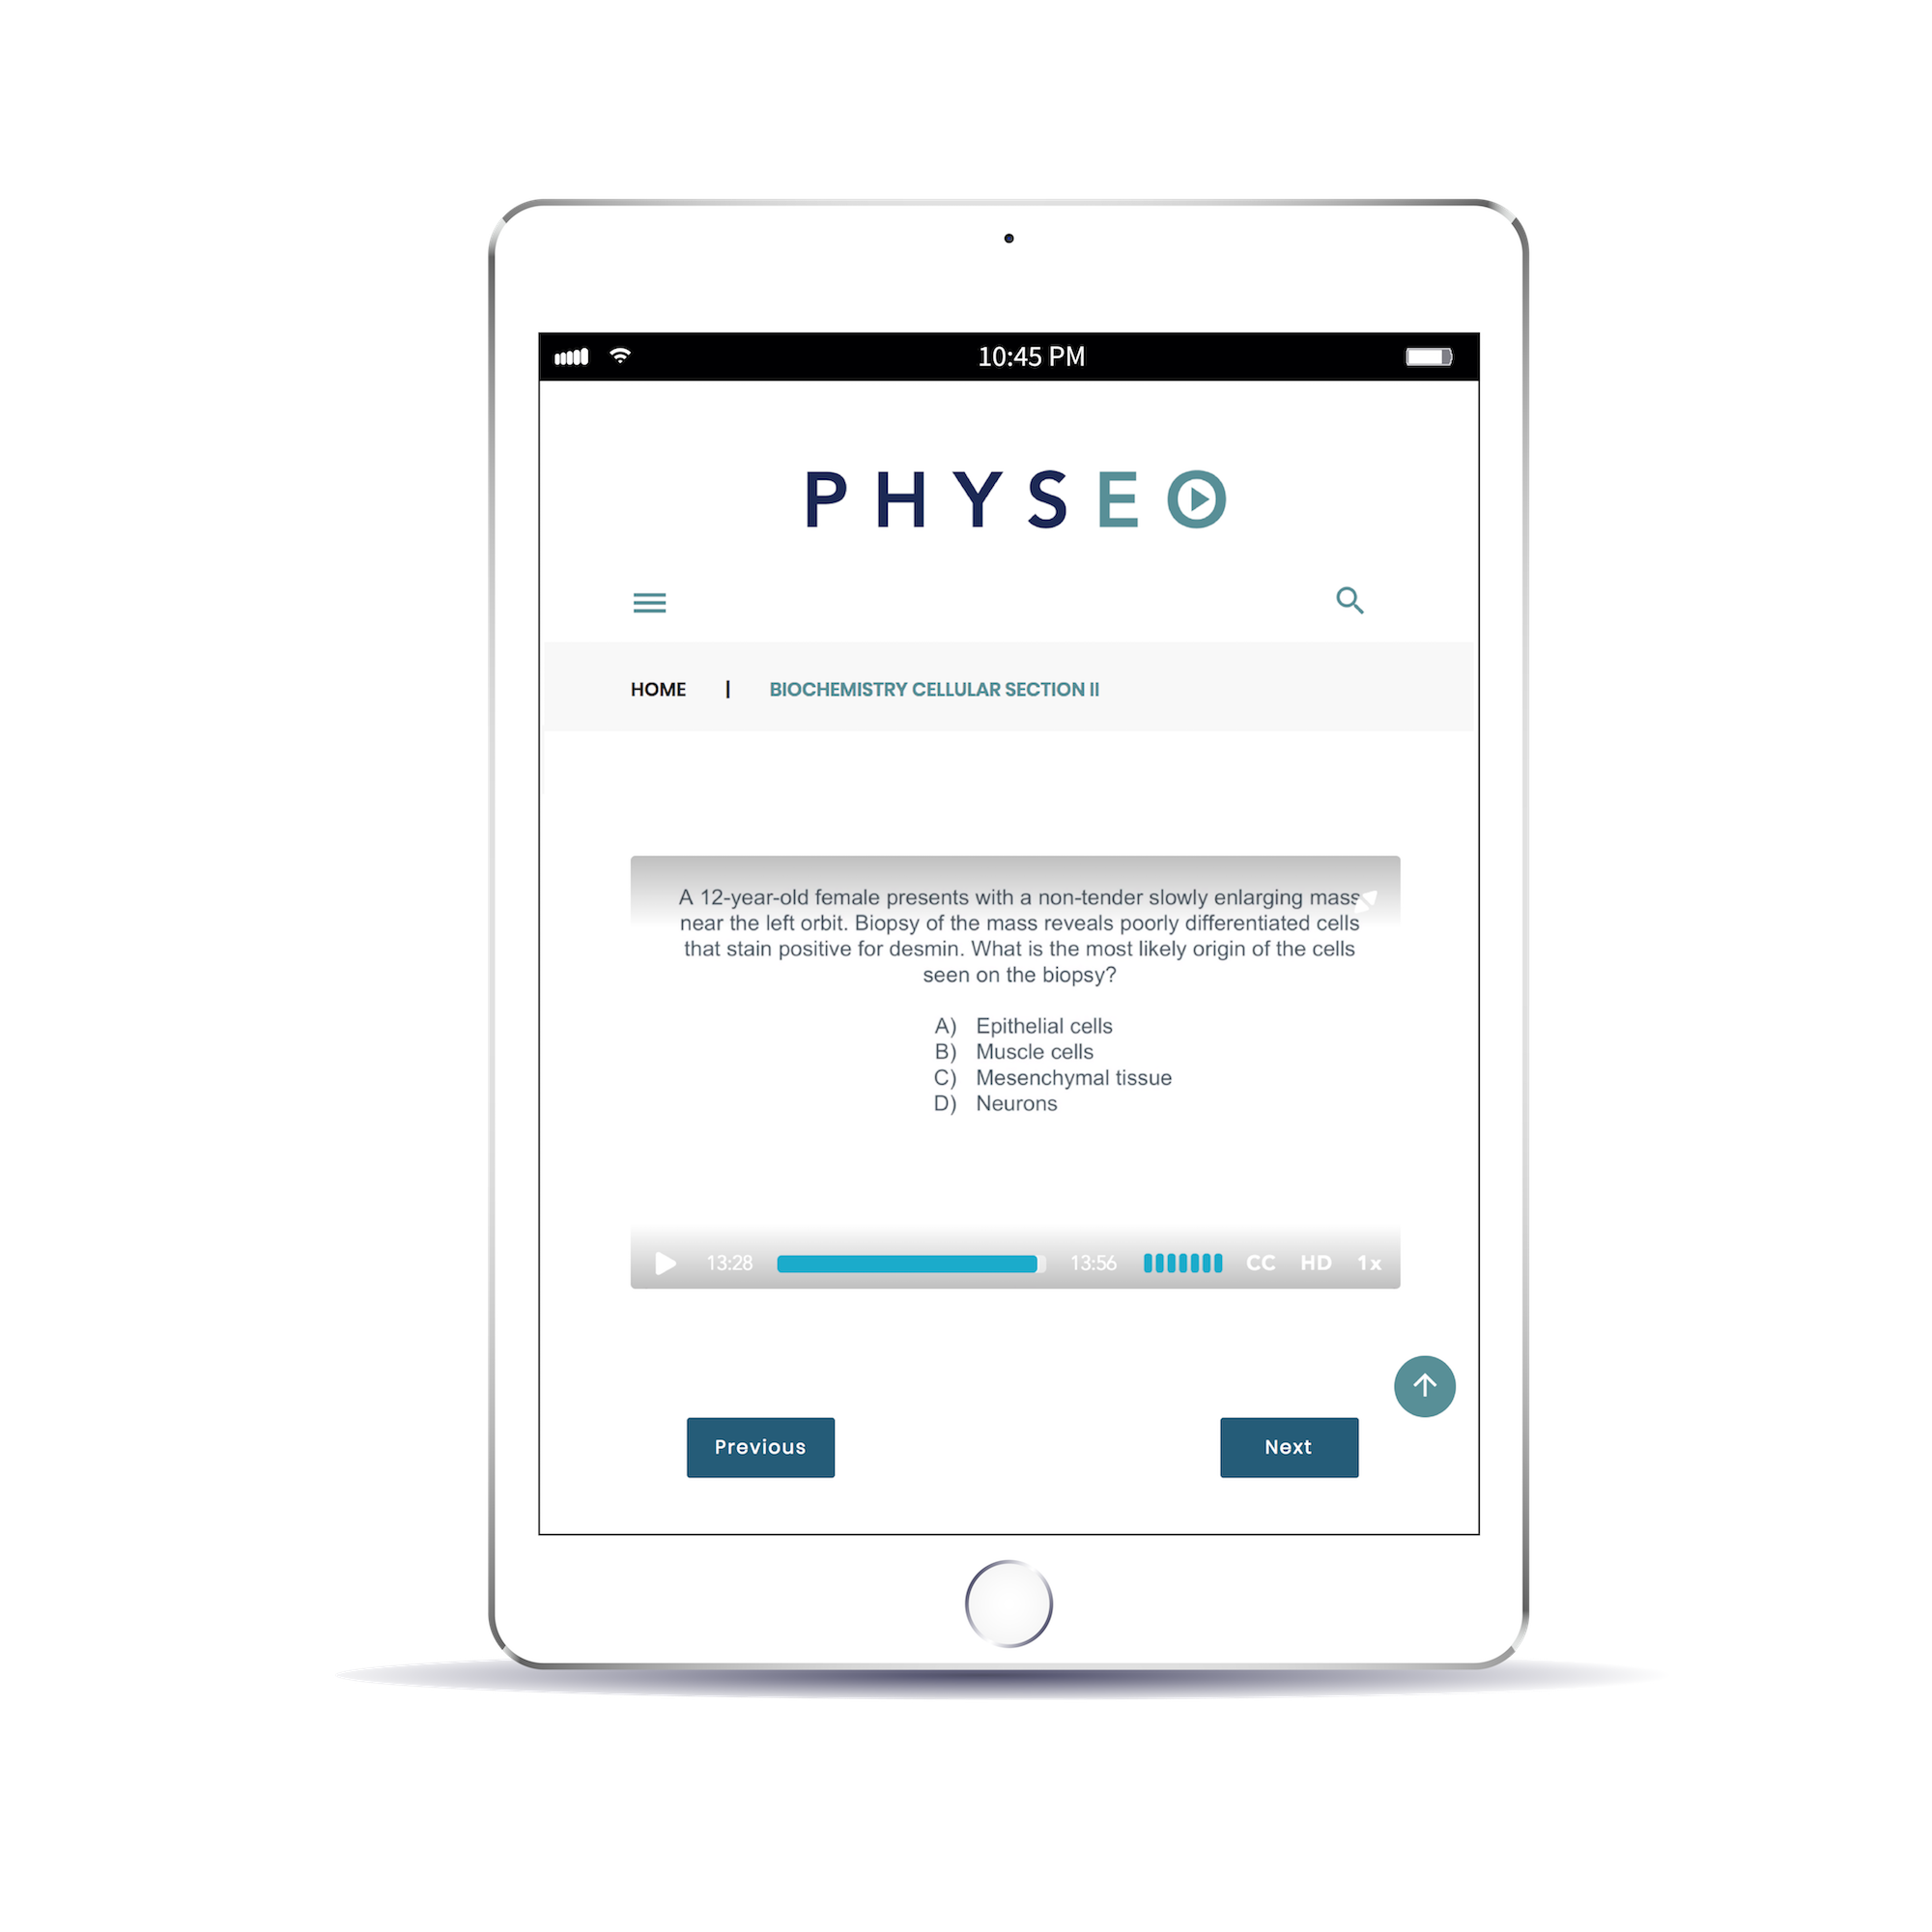 Physeo webpage on iPad with questions